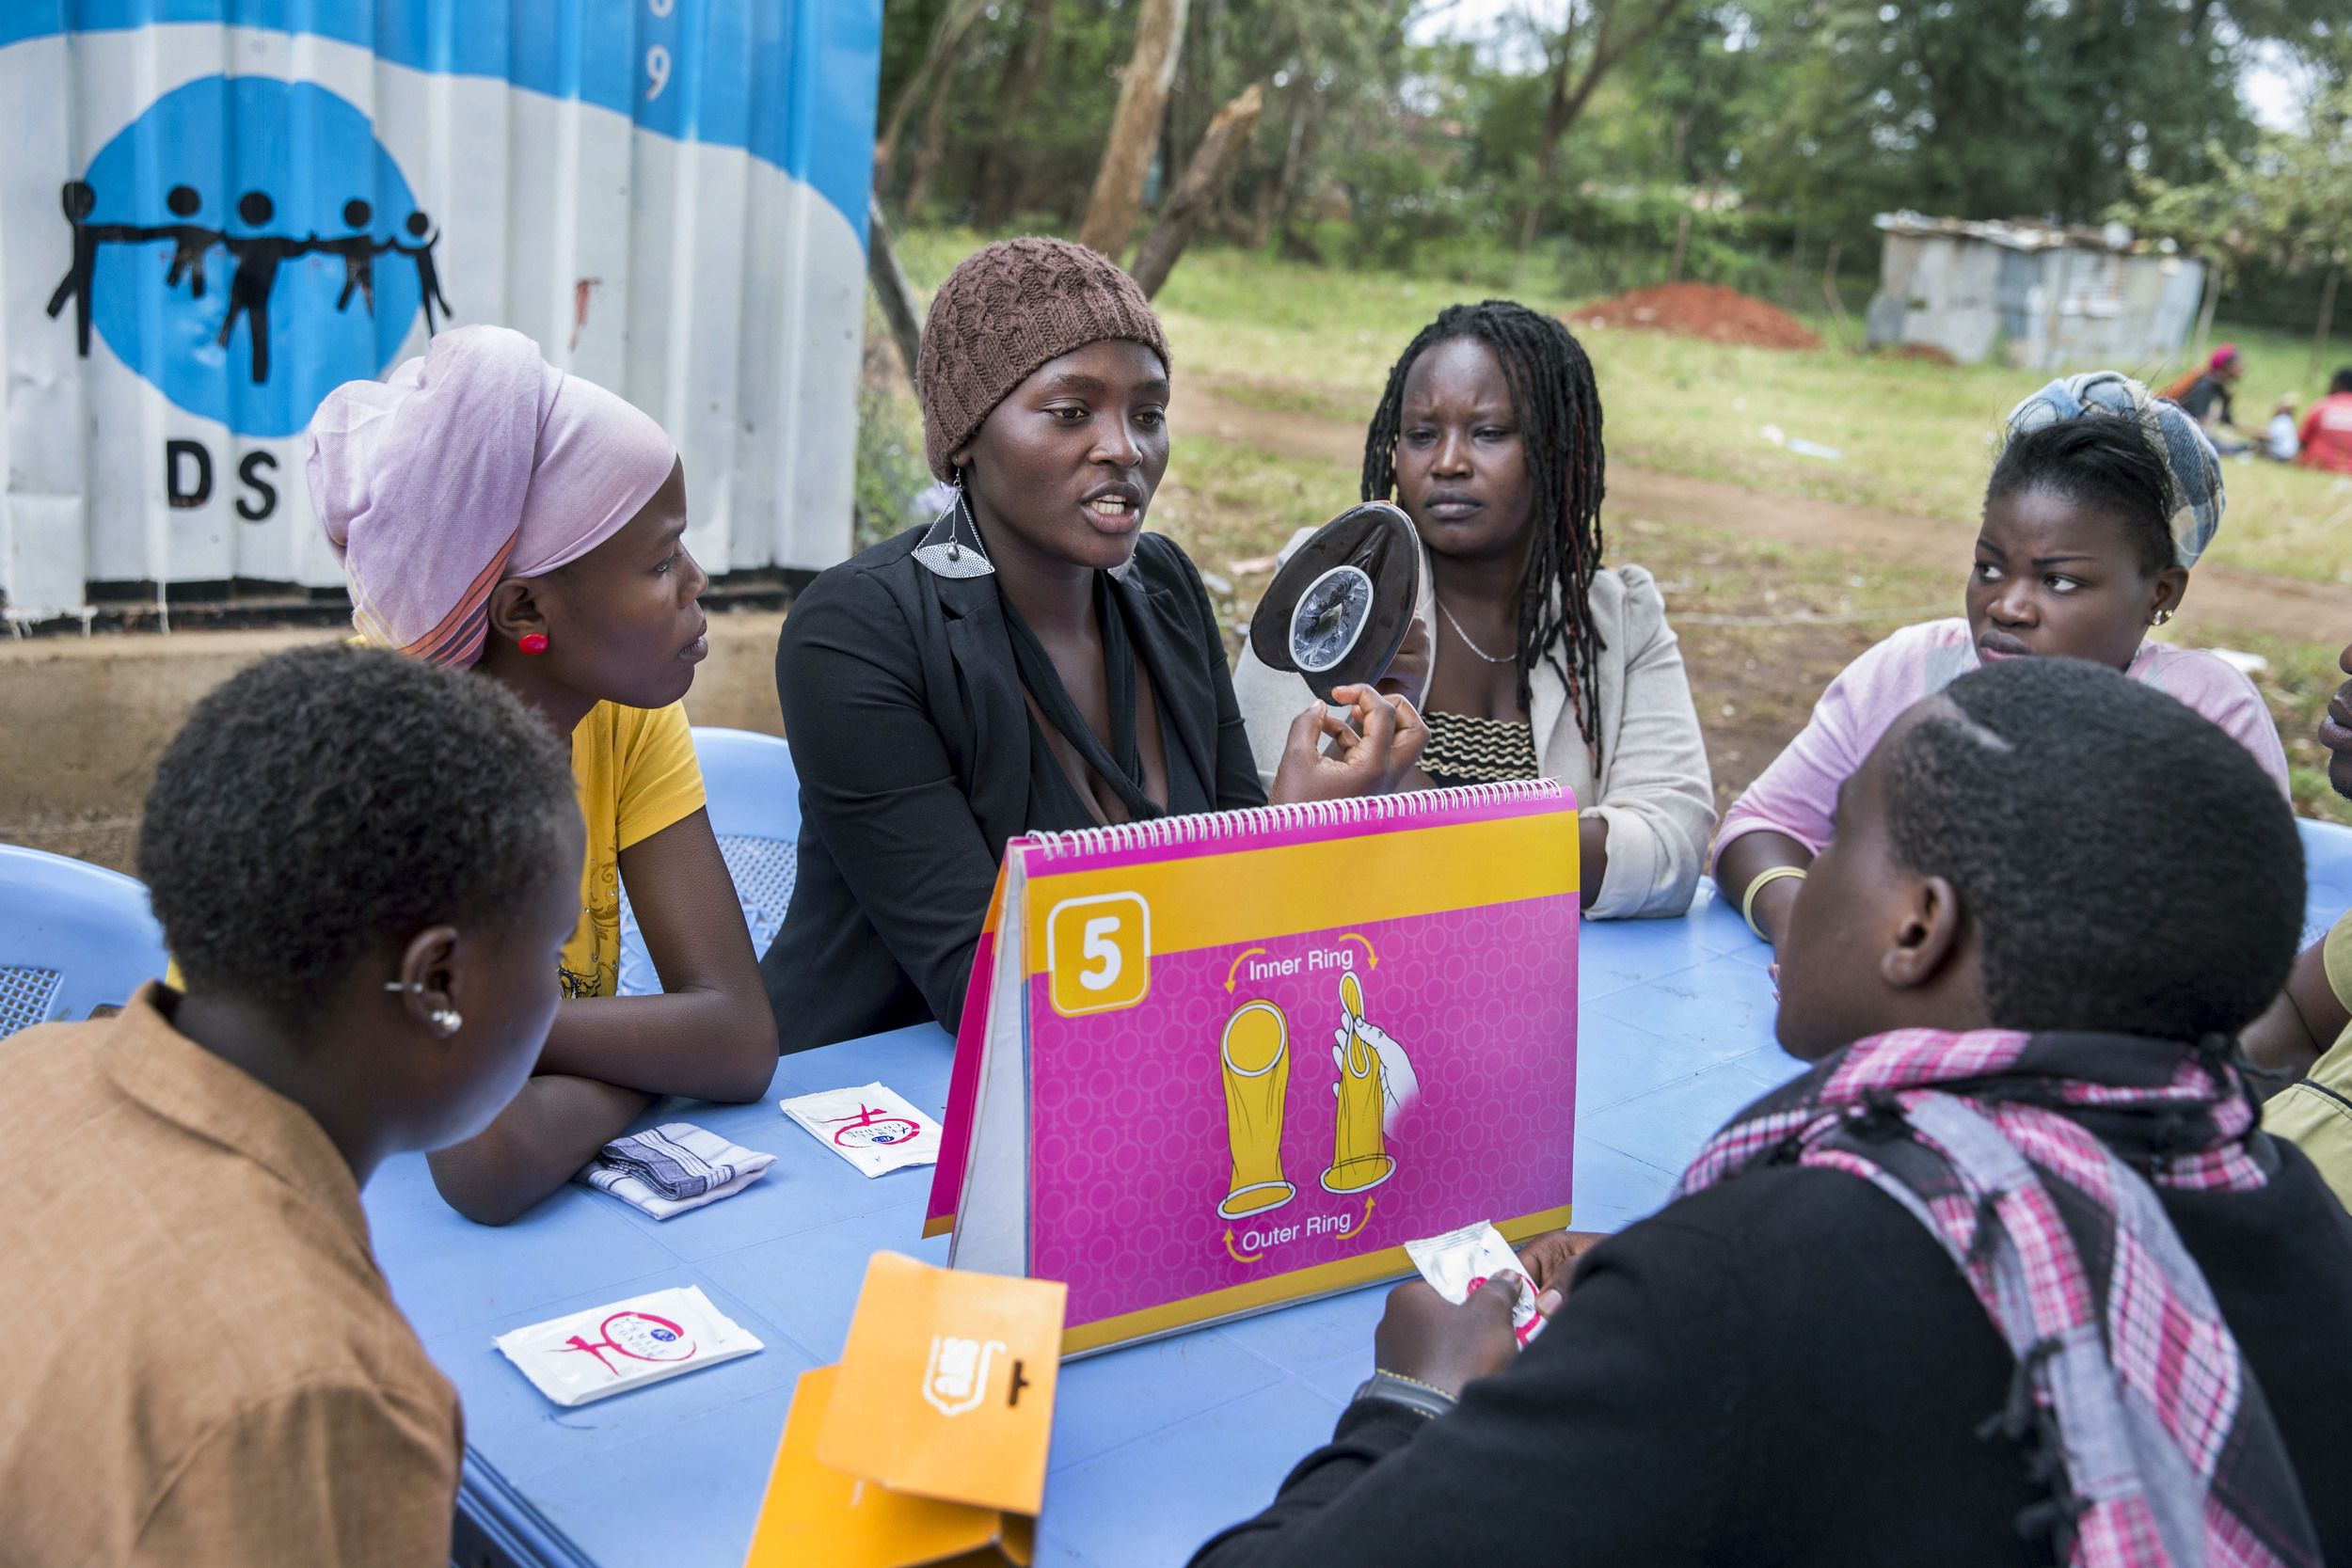 Kenya's Nyeri County Opens Youth-Friendly Service Clinic through Public-Private Partnerships